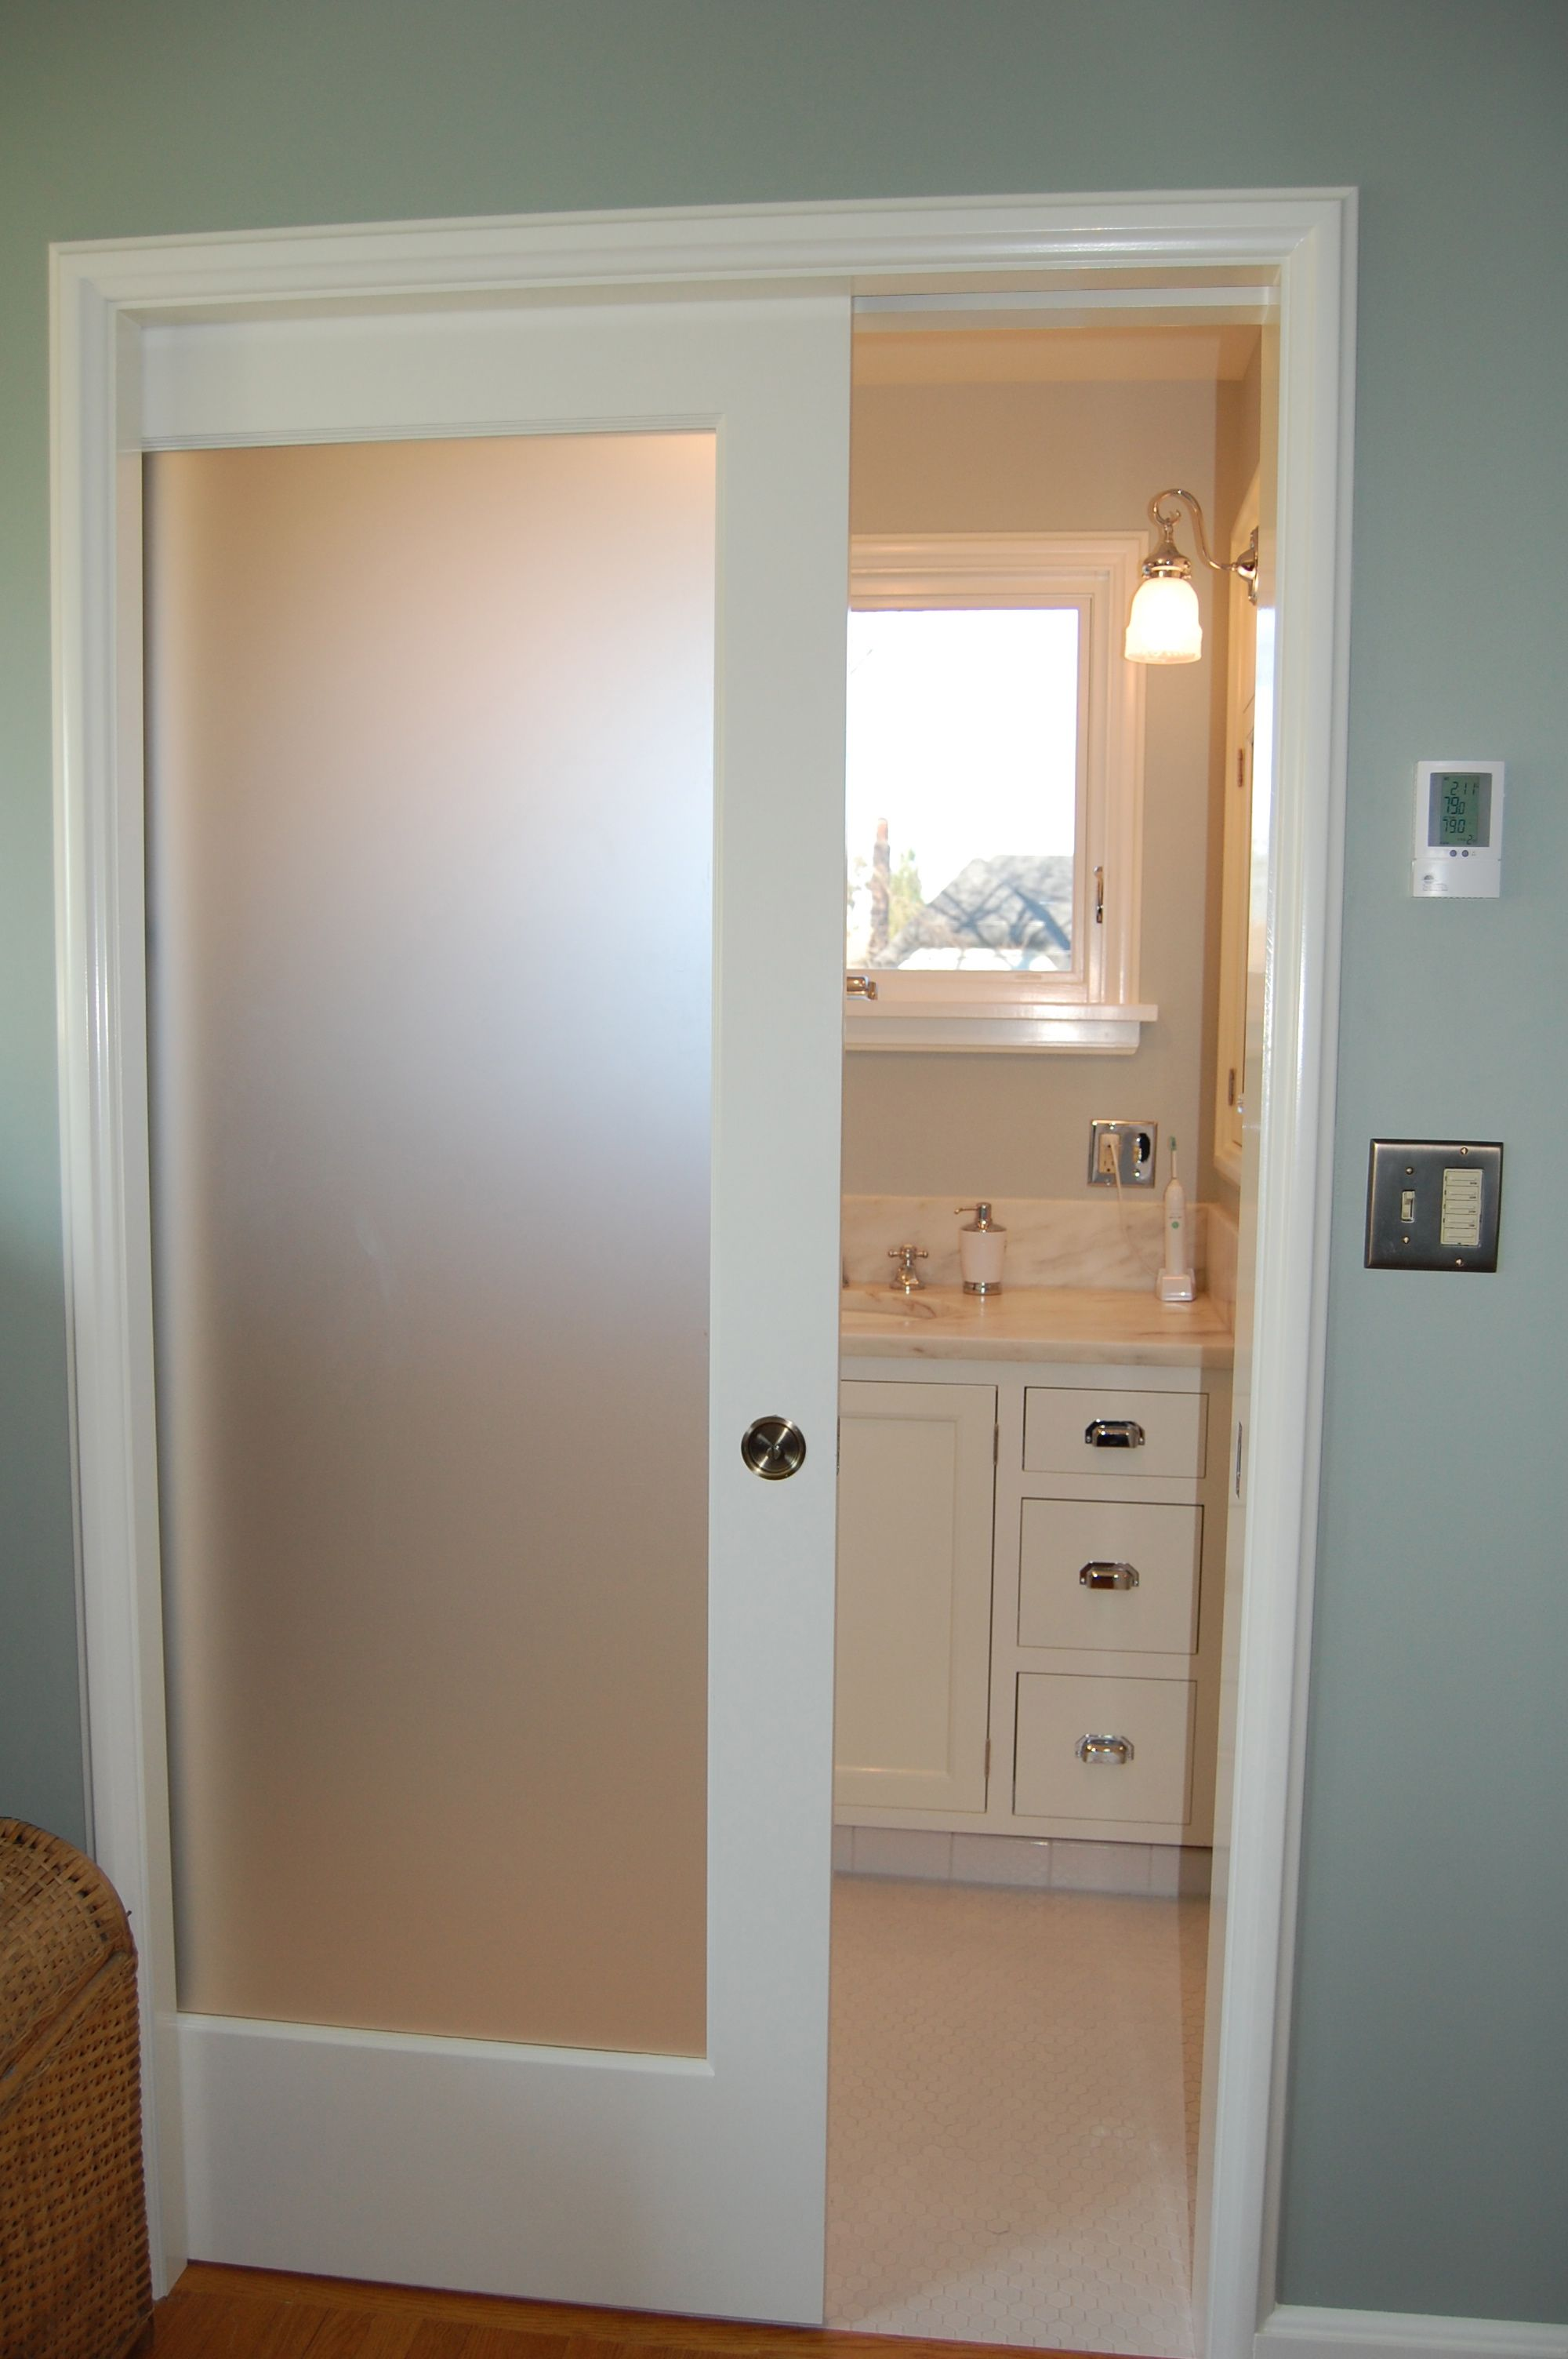 White Bathroom Door alameda remodel is complete! | pocket doors, doors and glass